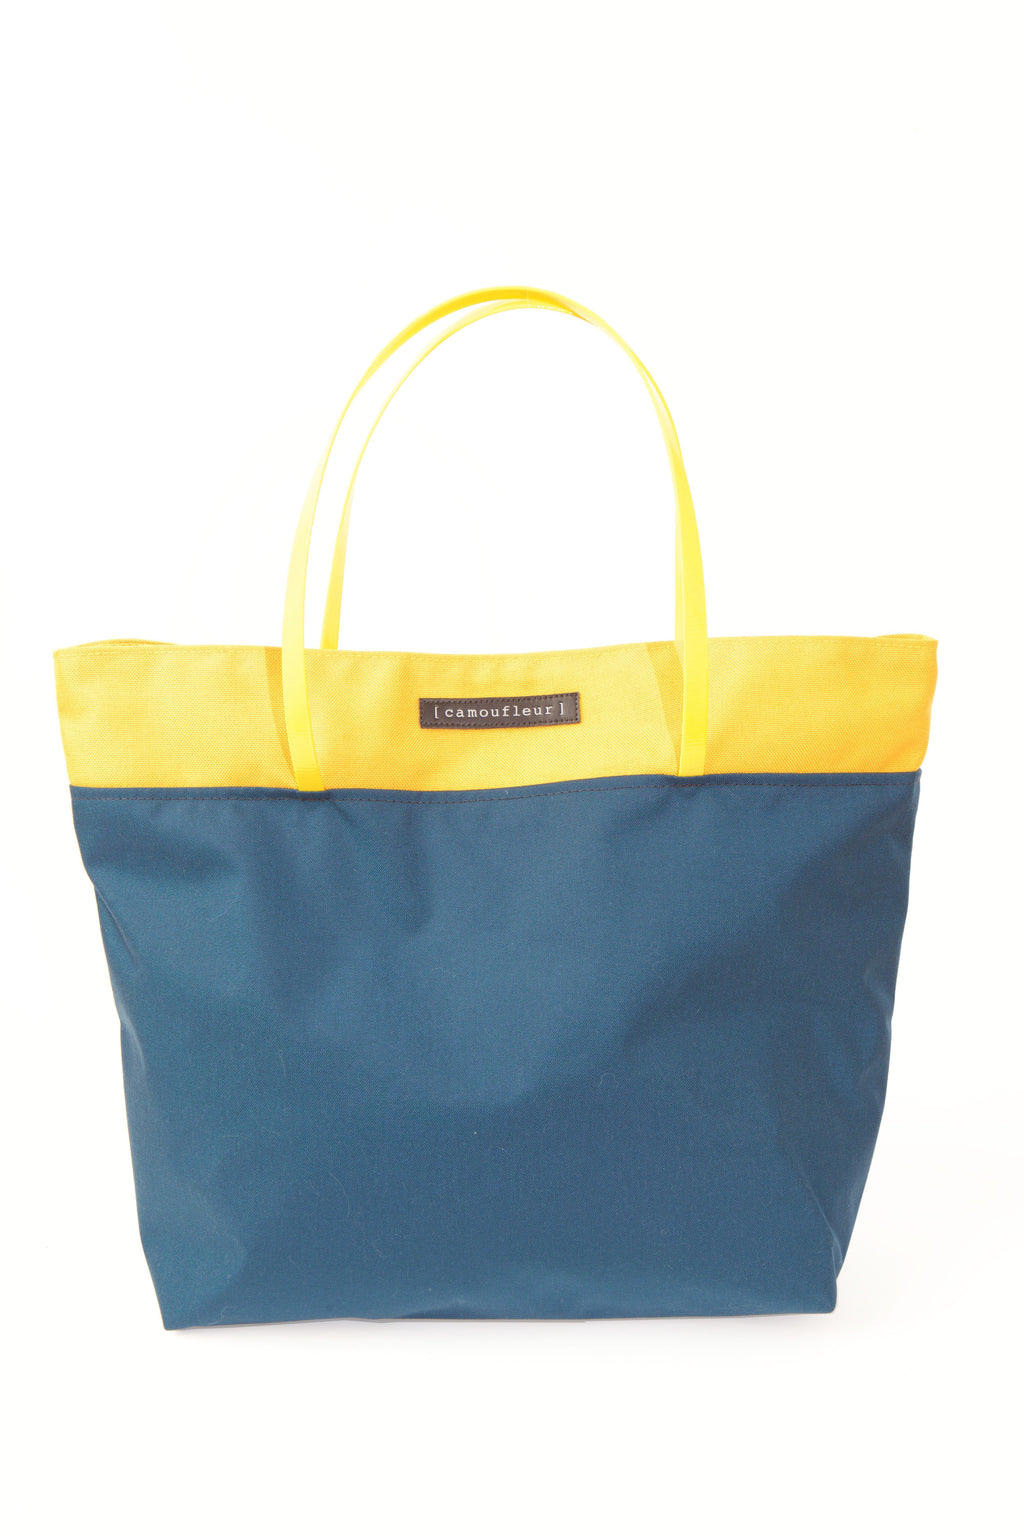 NO 9 TOTE - BROOKLYN INDUSTRIES